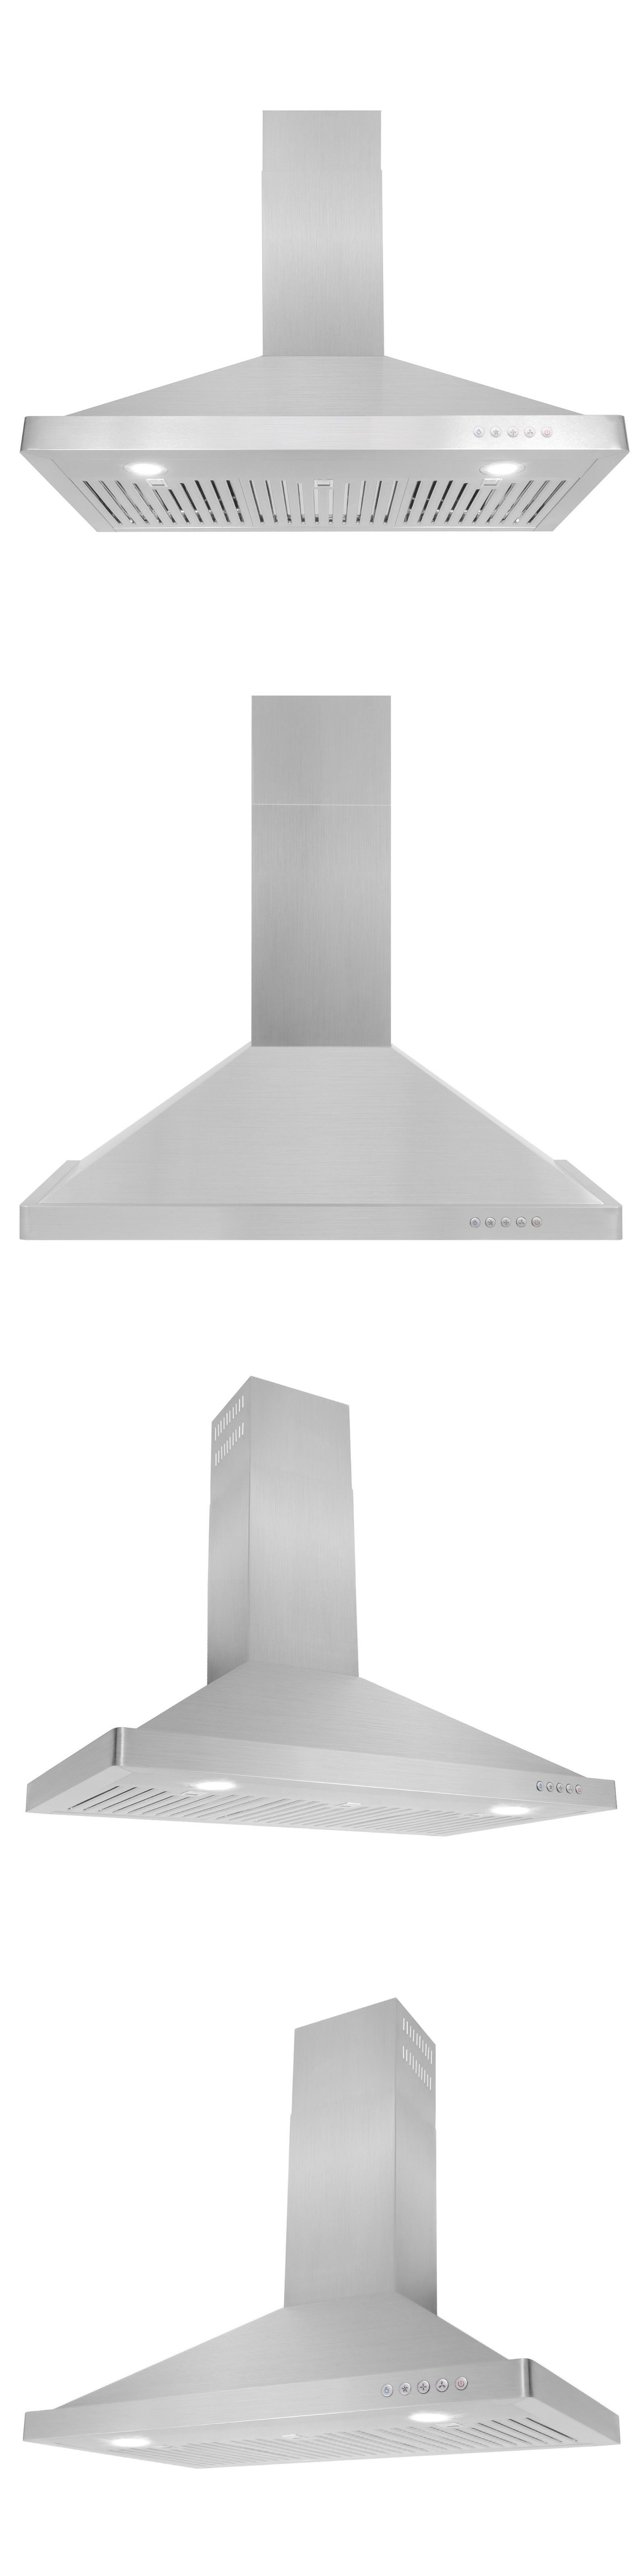 Details About 36 Ducted Wall Mount Range Hood 760 Cfm Permanent Stainless Steel Filters Leds Wall Mount Range Hood Range Hood Range Hood Fan